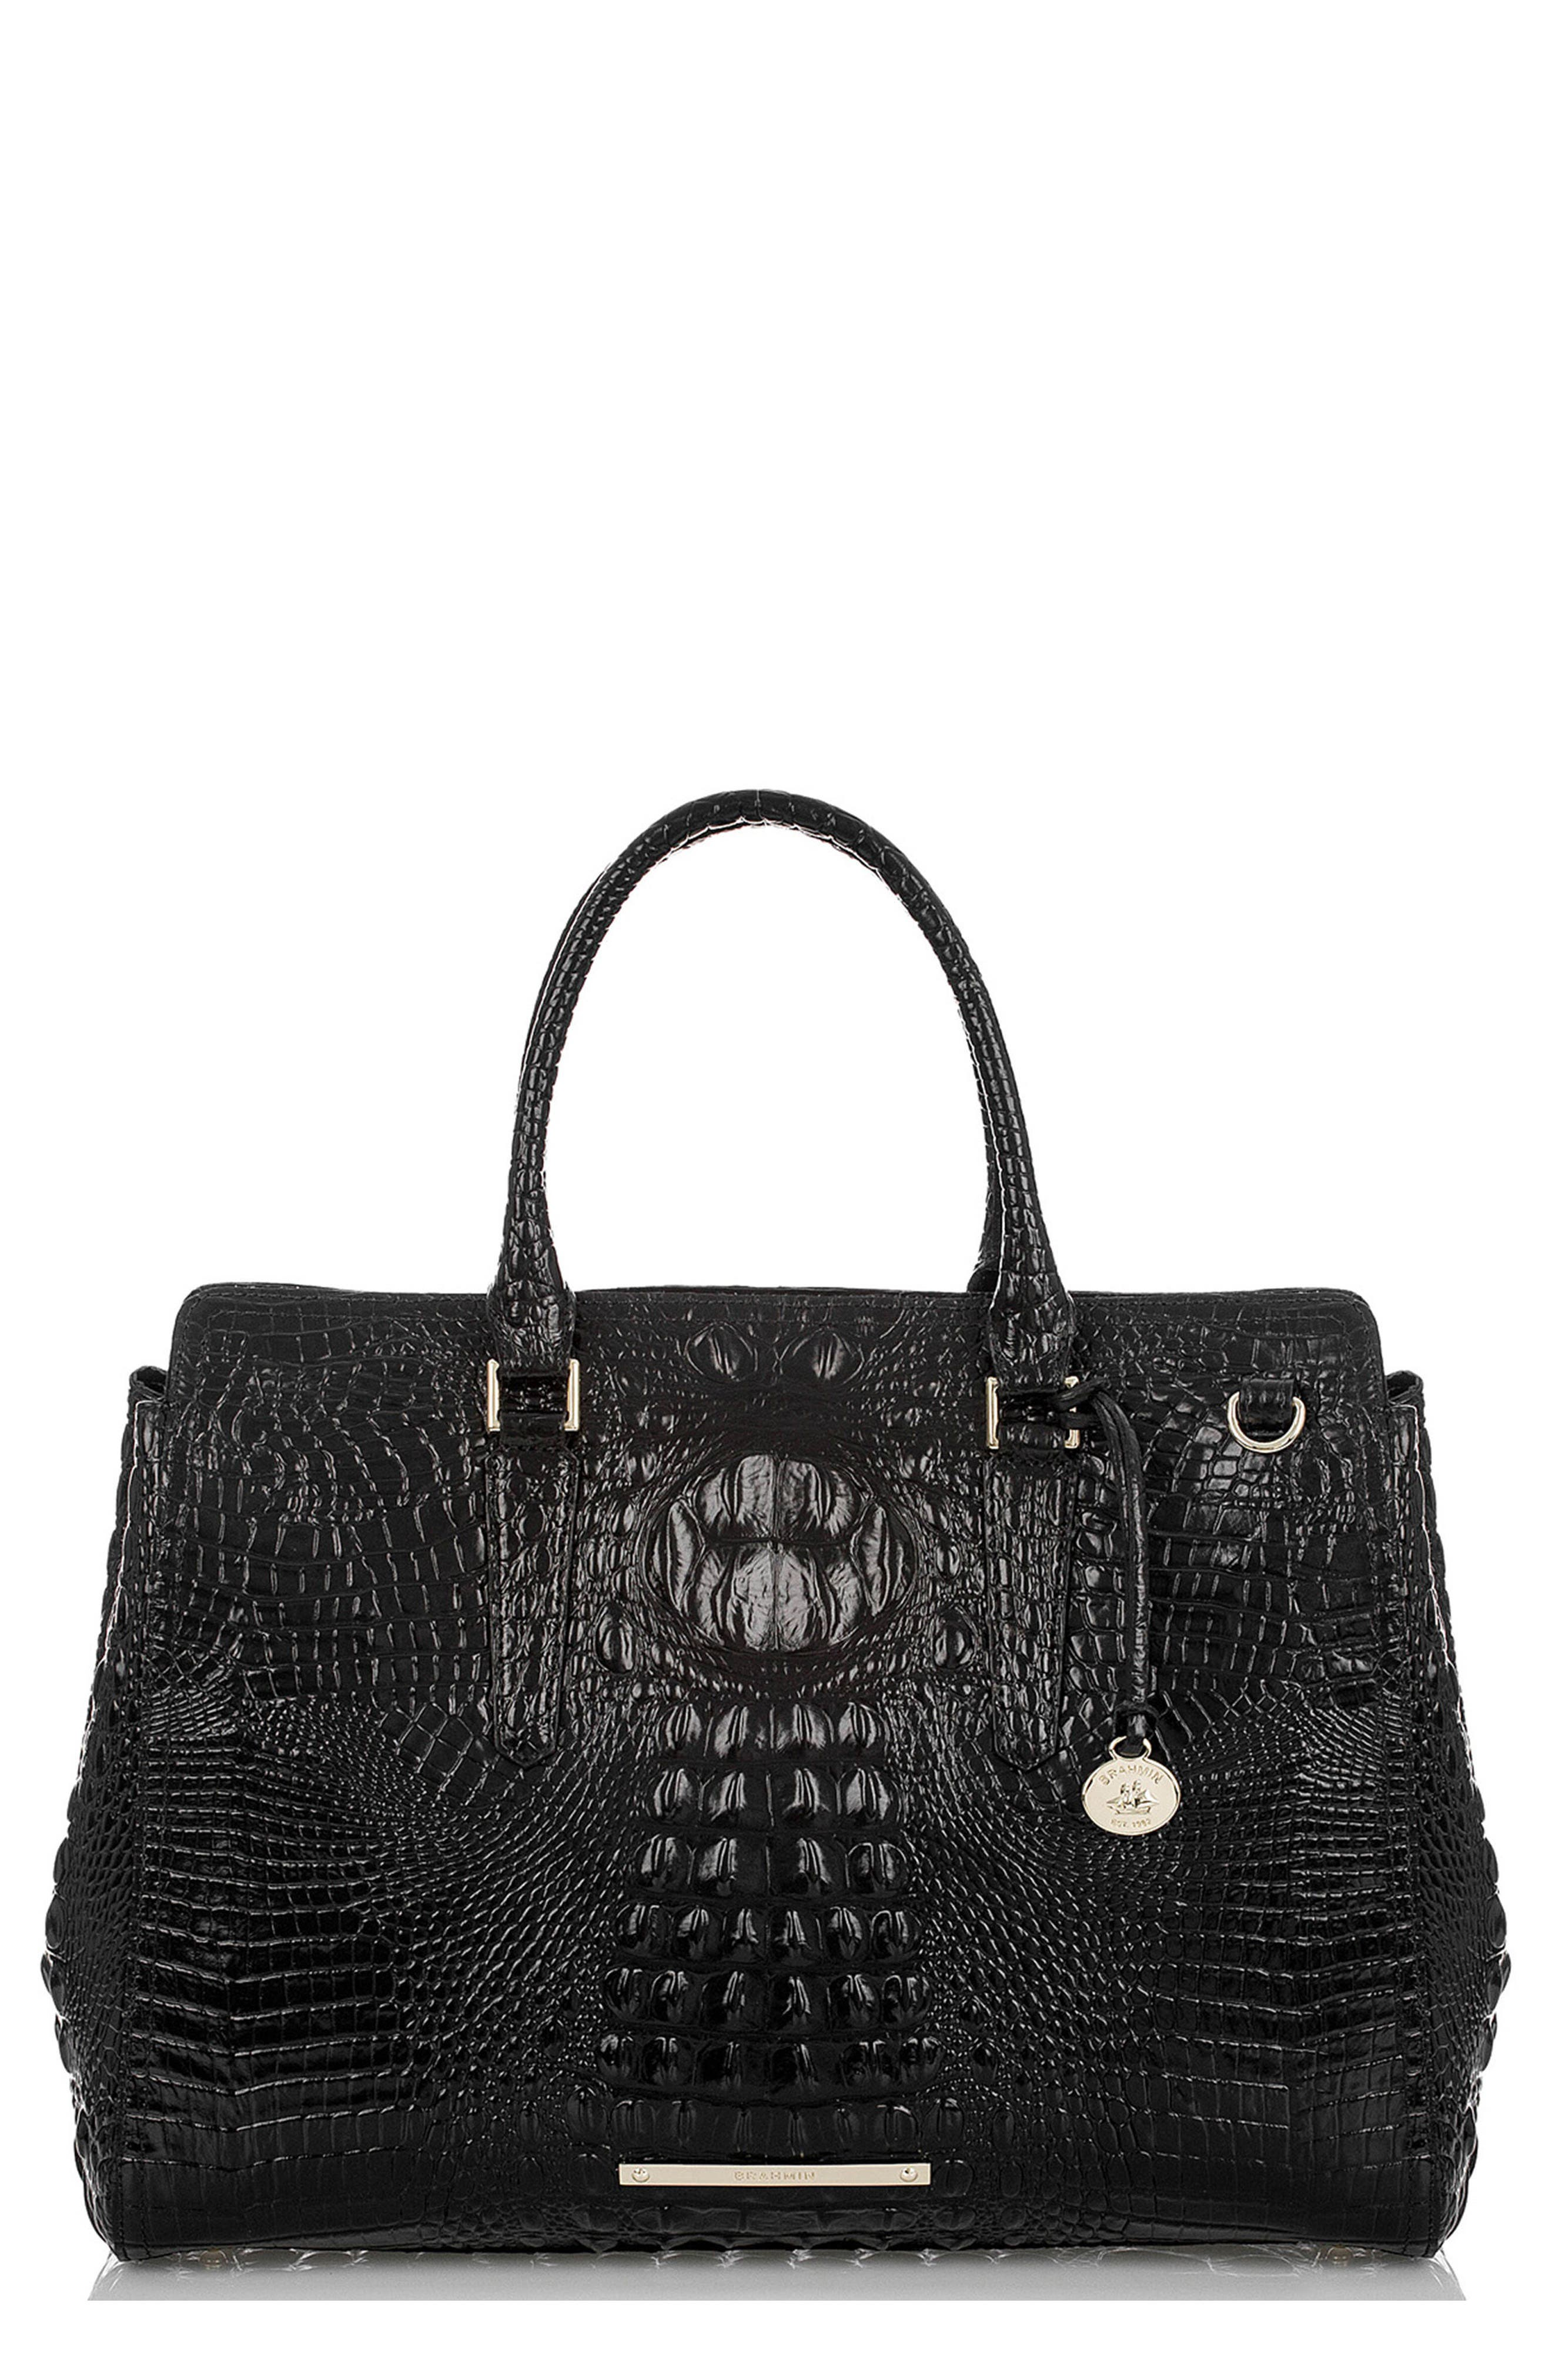 Finley Croc Embossed Leather Tote,                             Main thumbnail 1, color,                             001